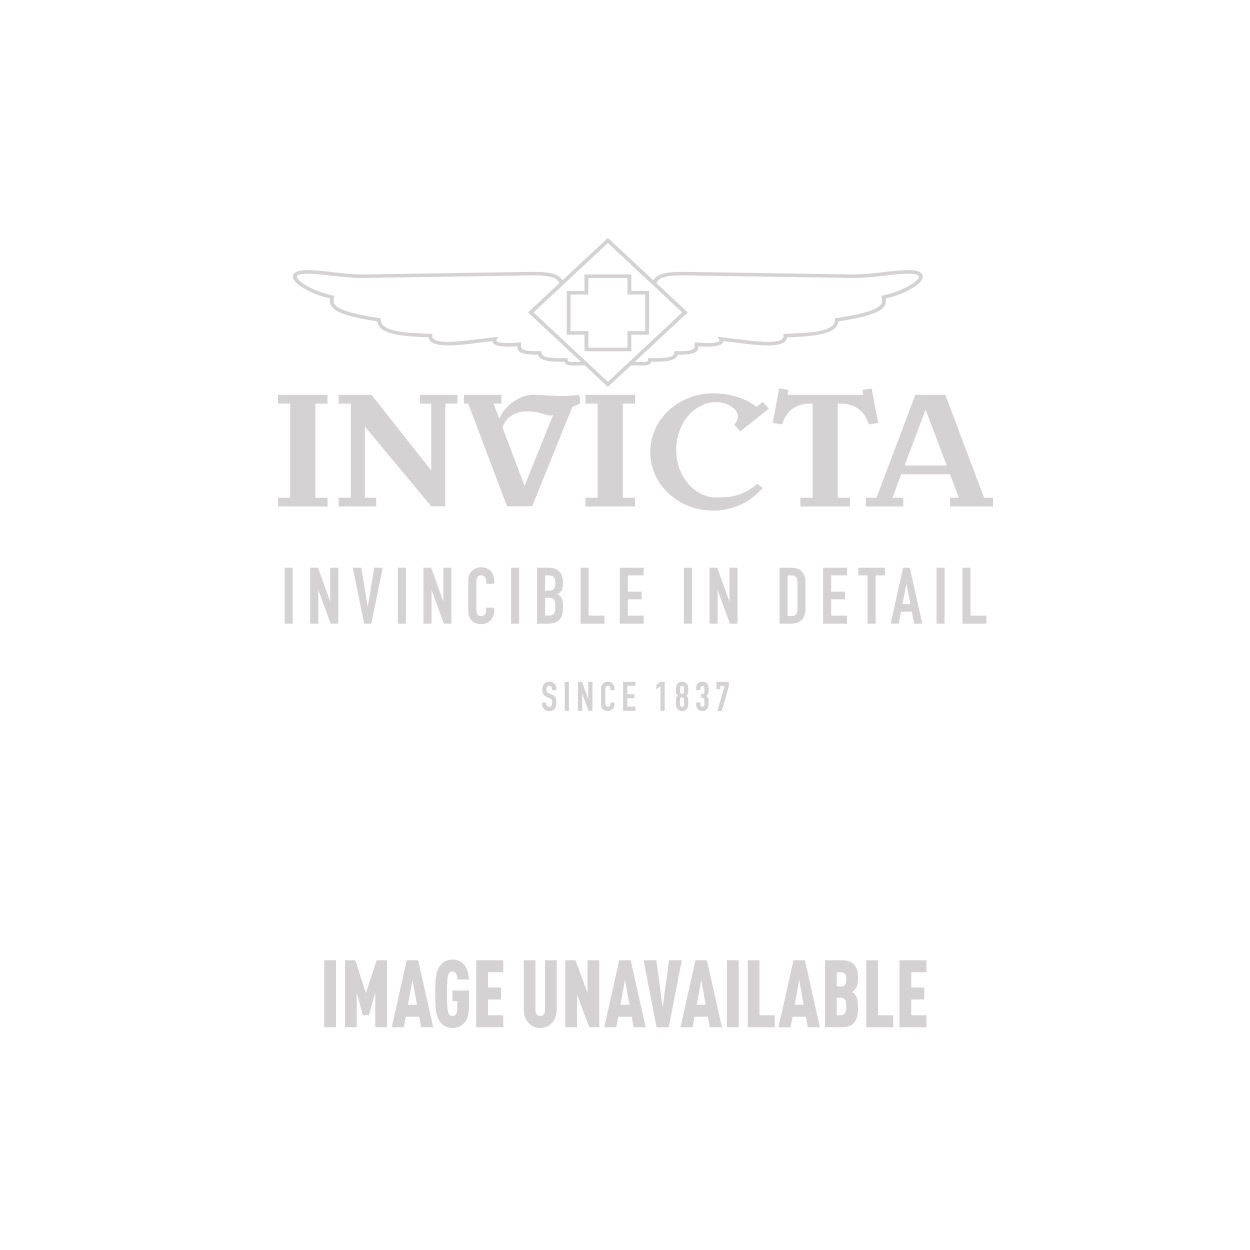 Invicta Sea Base Swiss Movement Quartz Watch - Stainless Steel case Stainless Steel band - Model 20362